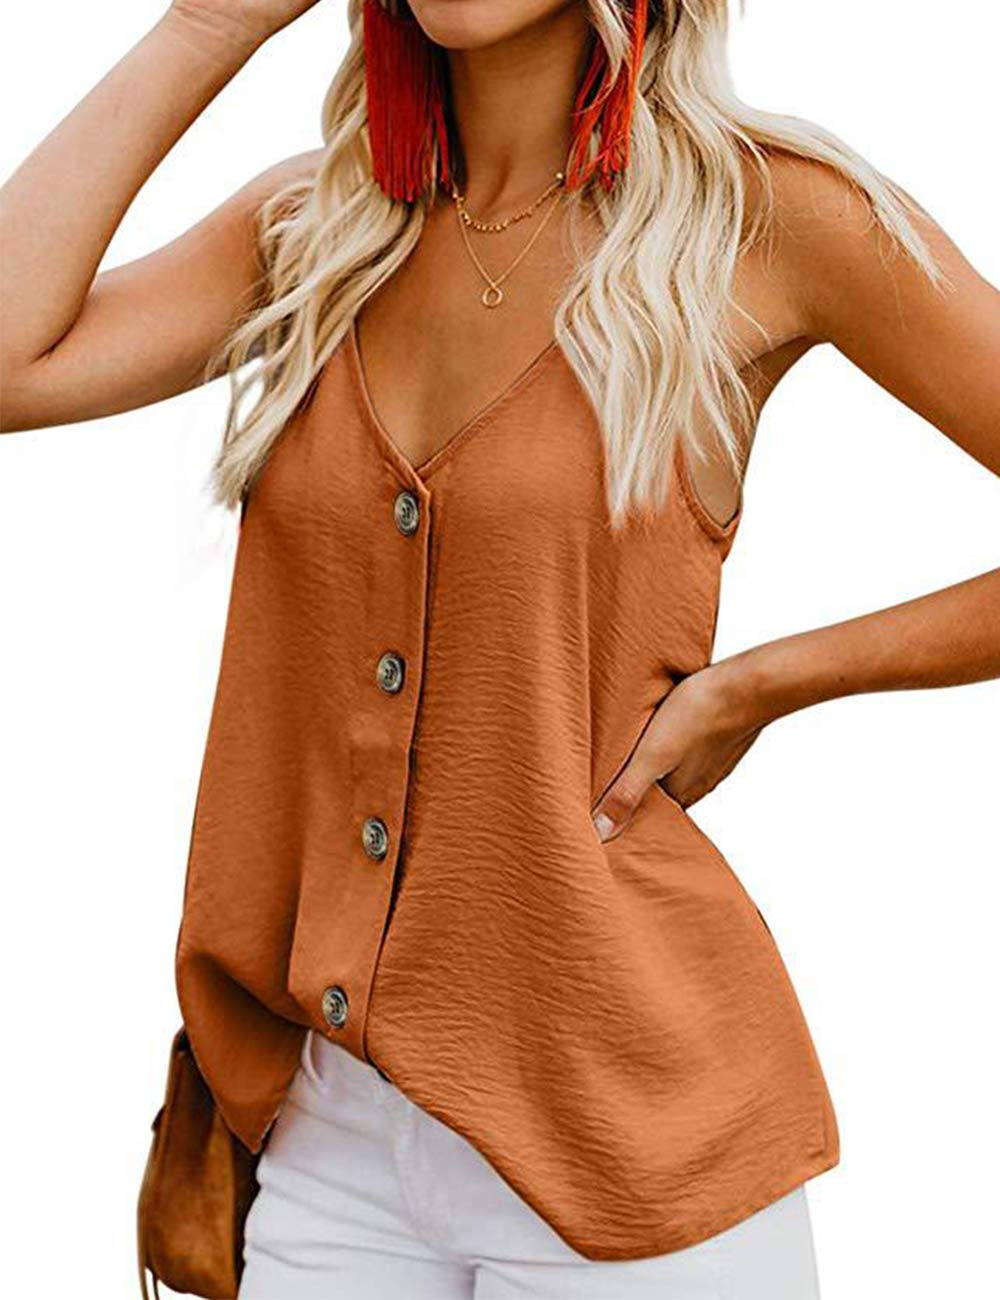 RSM &CHENG Women's Button Down V Neck Strappy Tank Tops Loose Casual Sleeveless Shirts Blouses(Brown,M)